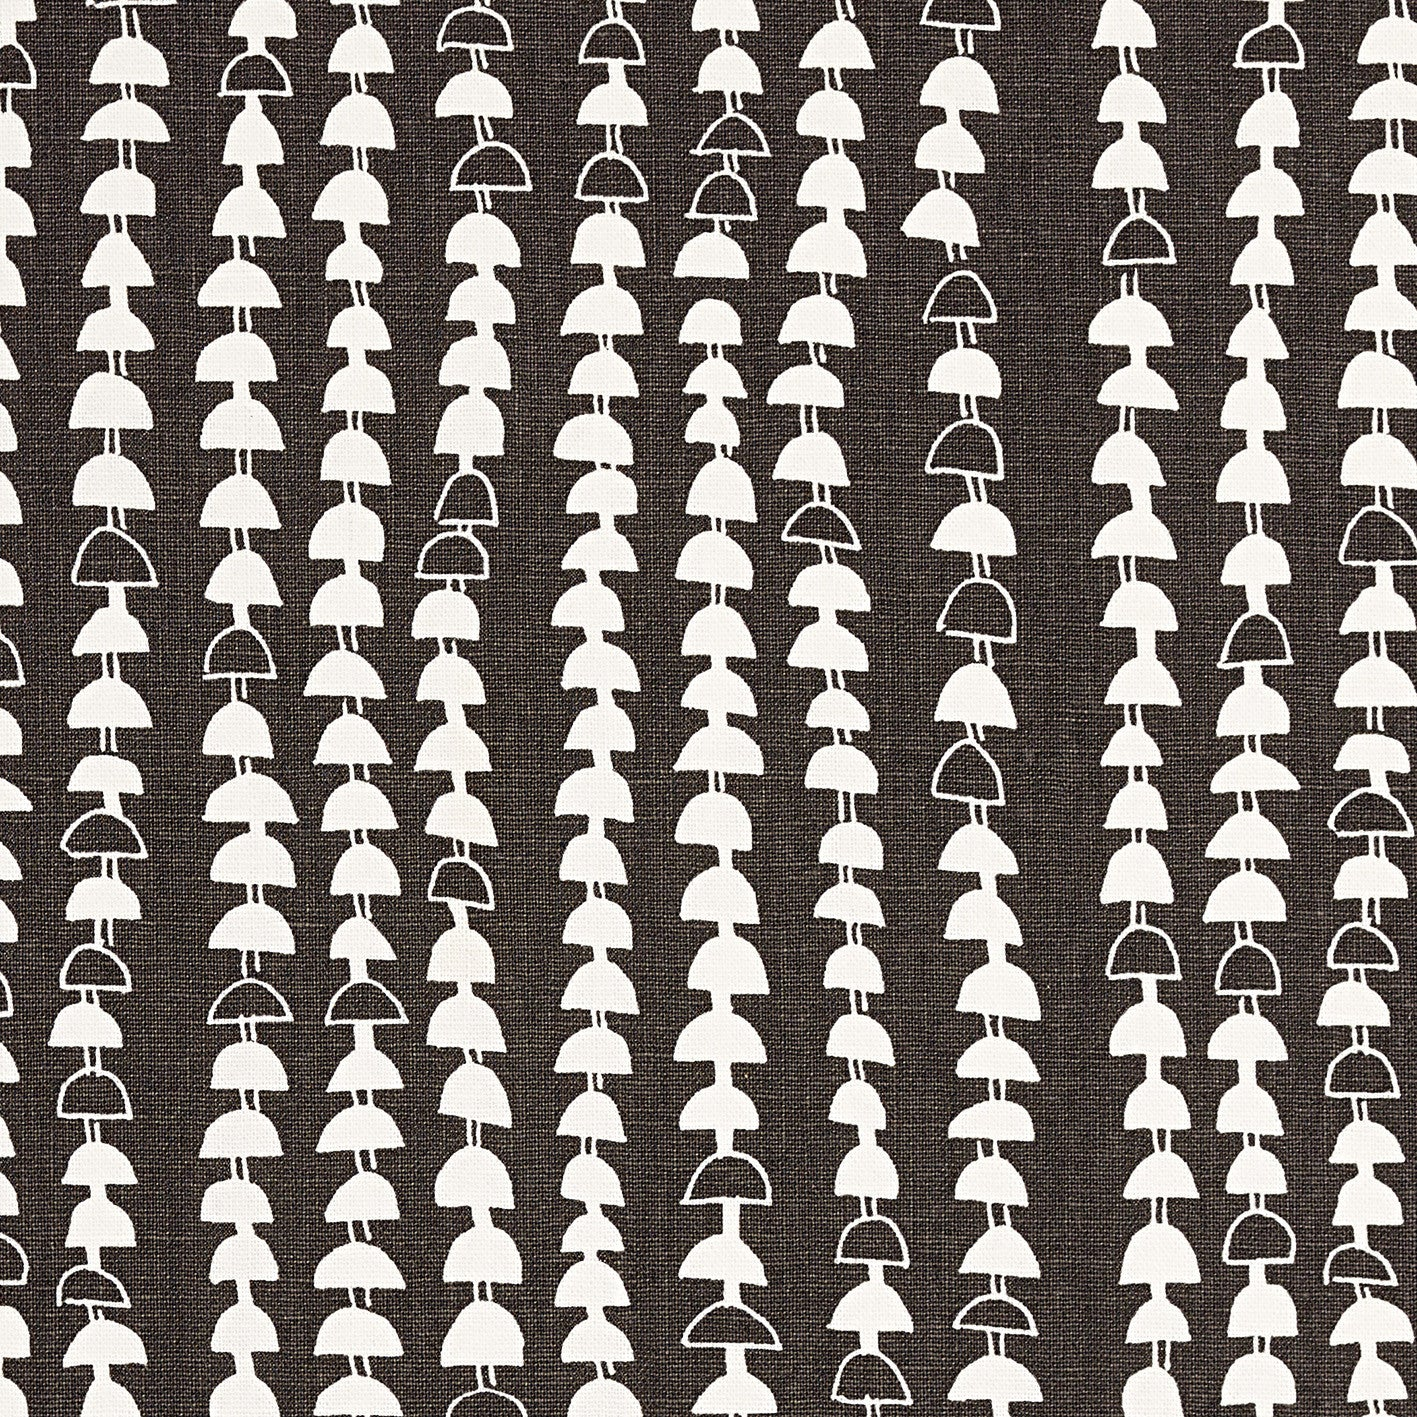 Hopi Graphic Strung Bead Pattern Linen Cotton Designer Home Decor Fabric for curtains, blinds, upholstery in Dark Stone Grey (Brown) ships from Canada to USA